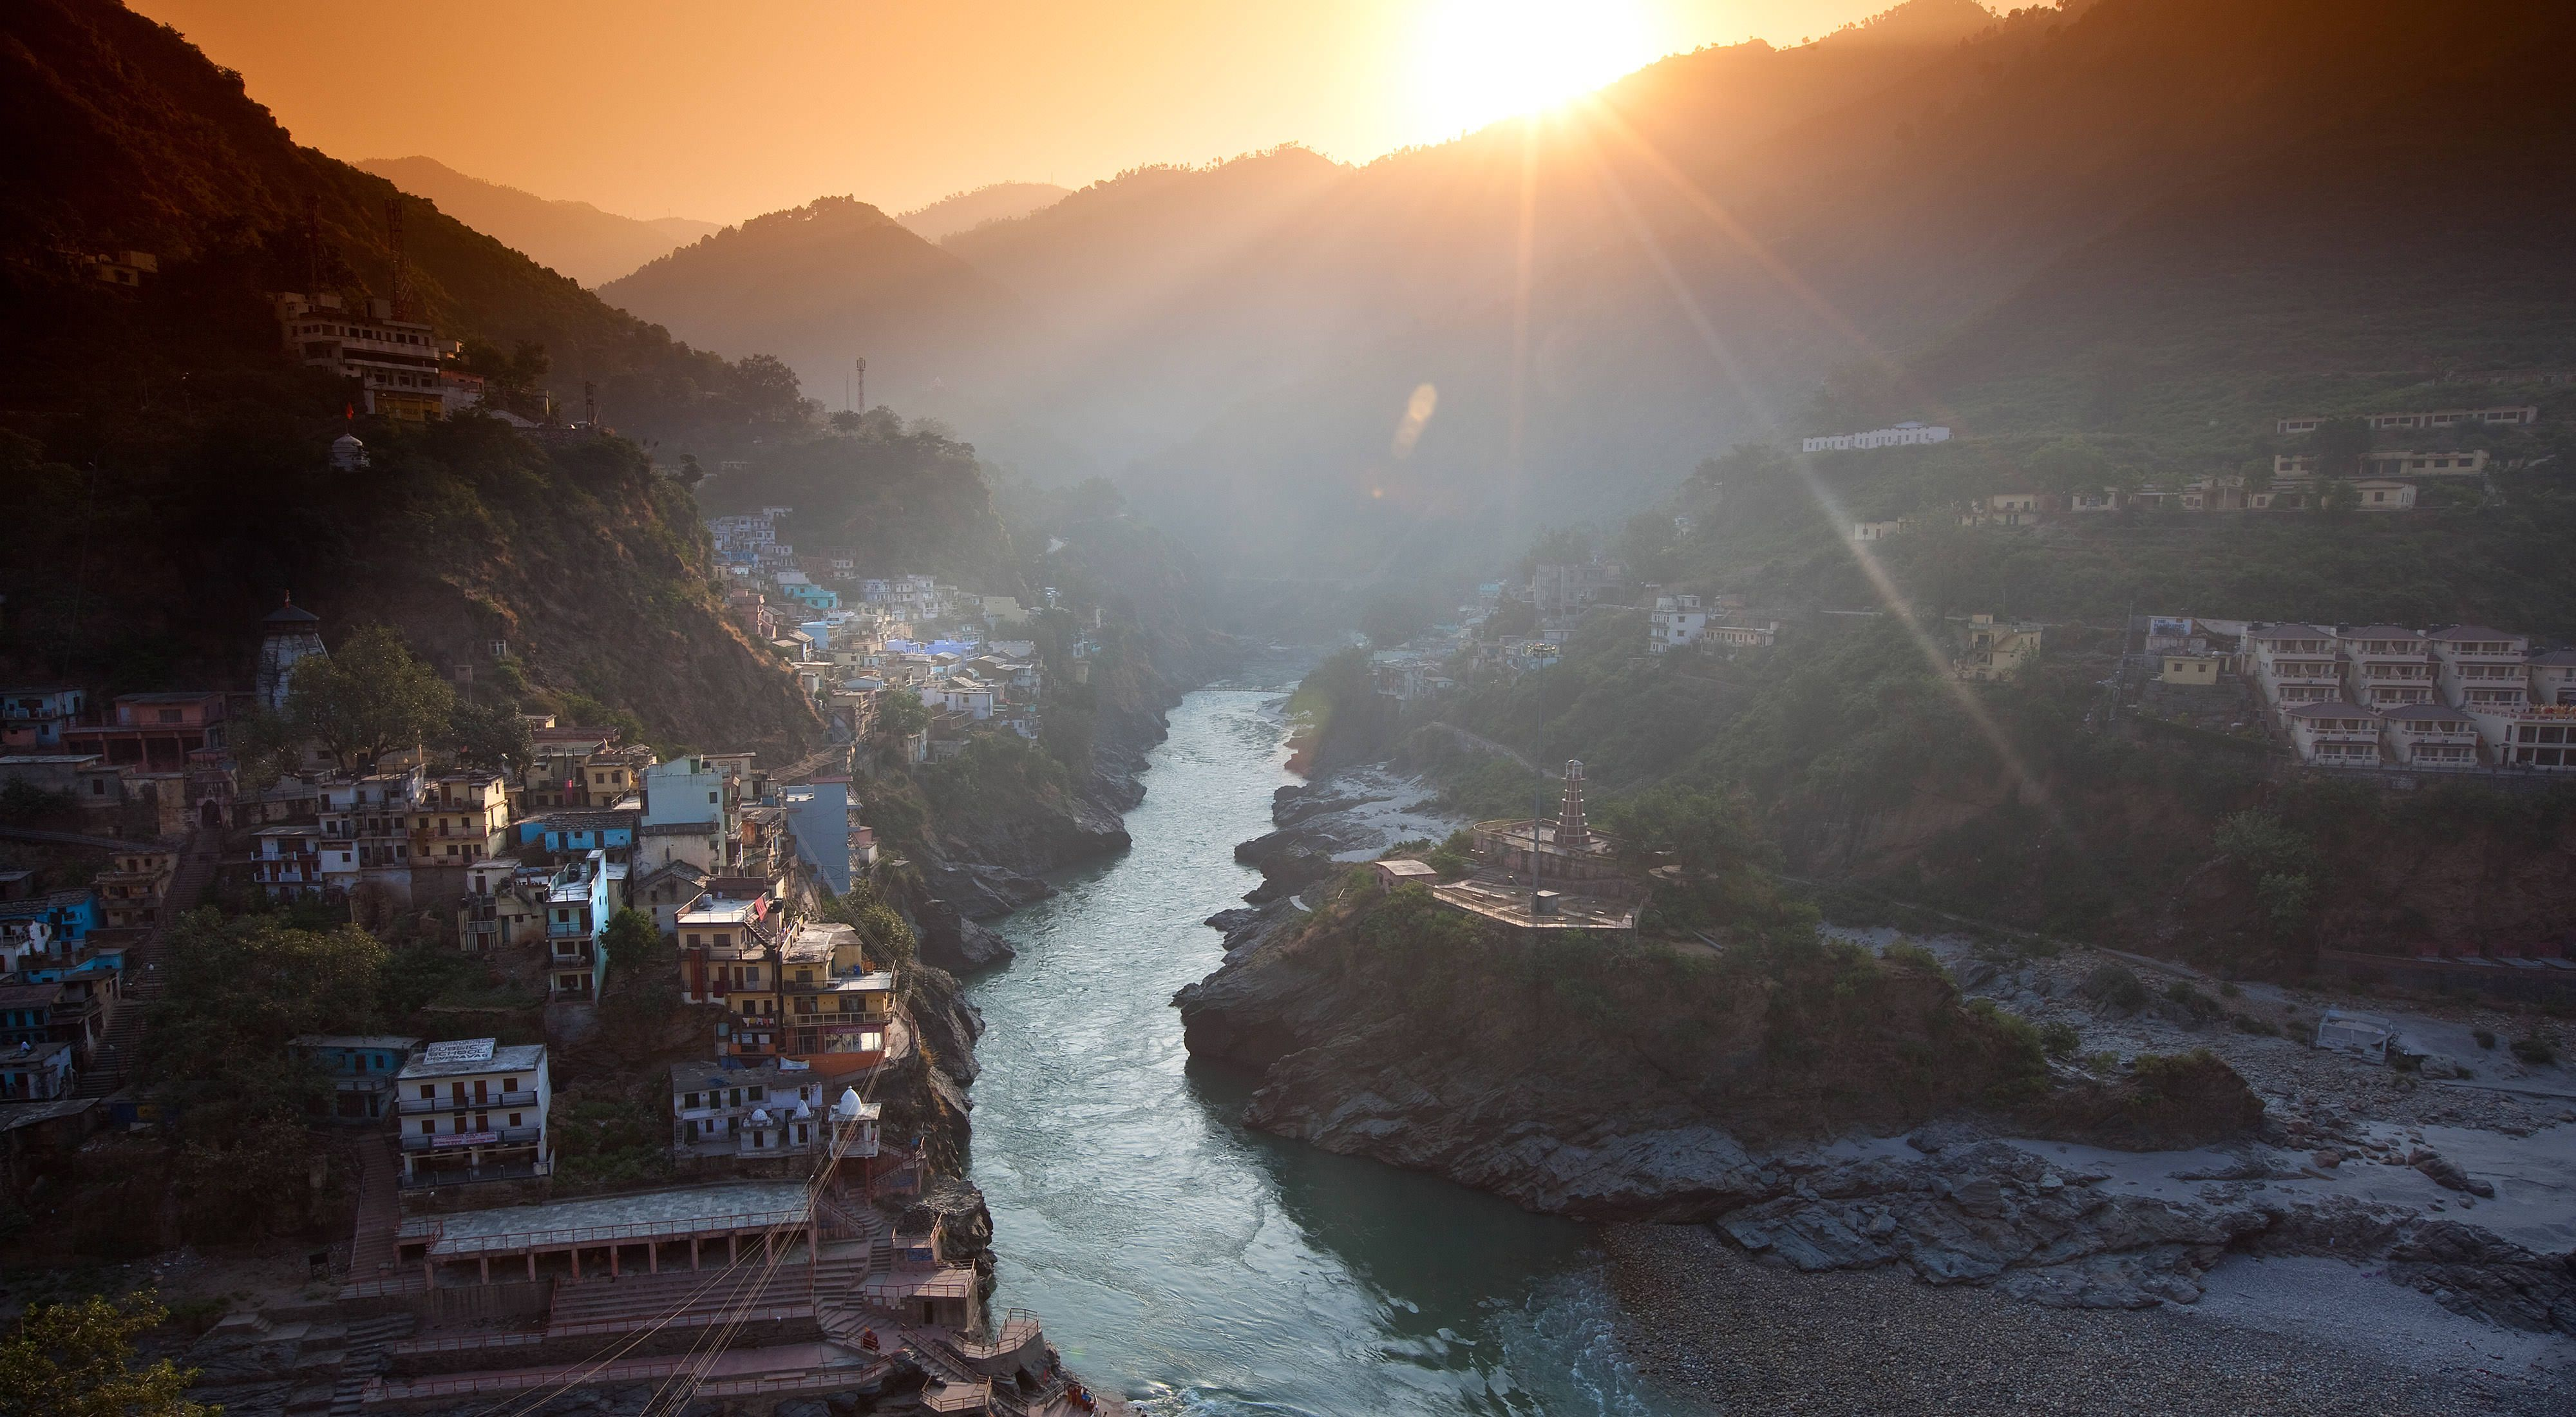 Villages line the sides of the Ganges River with the sunset